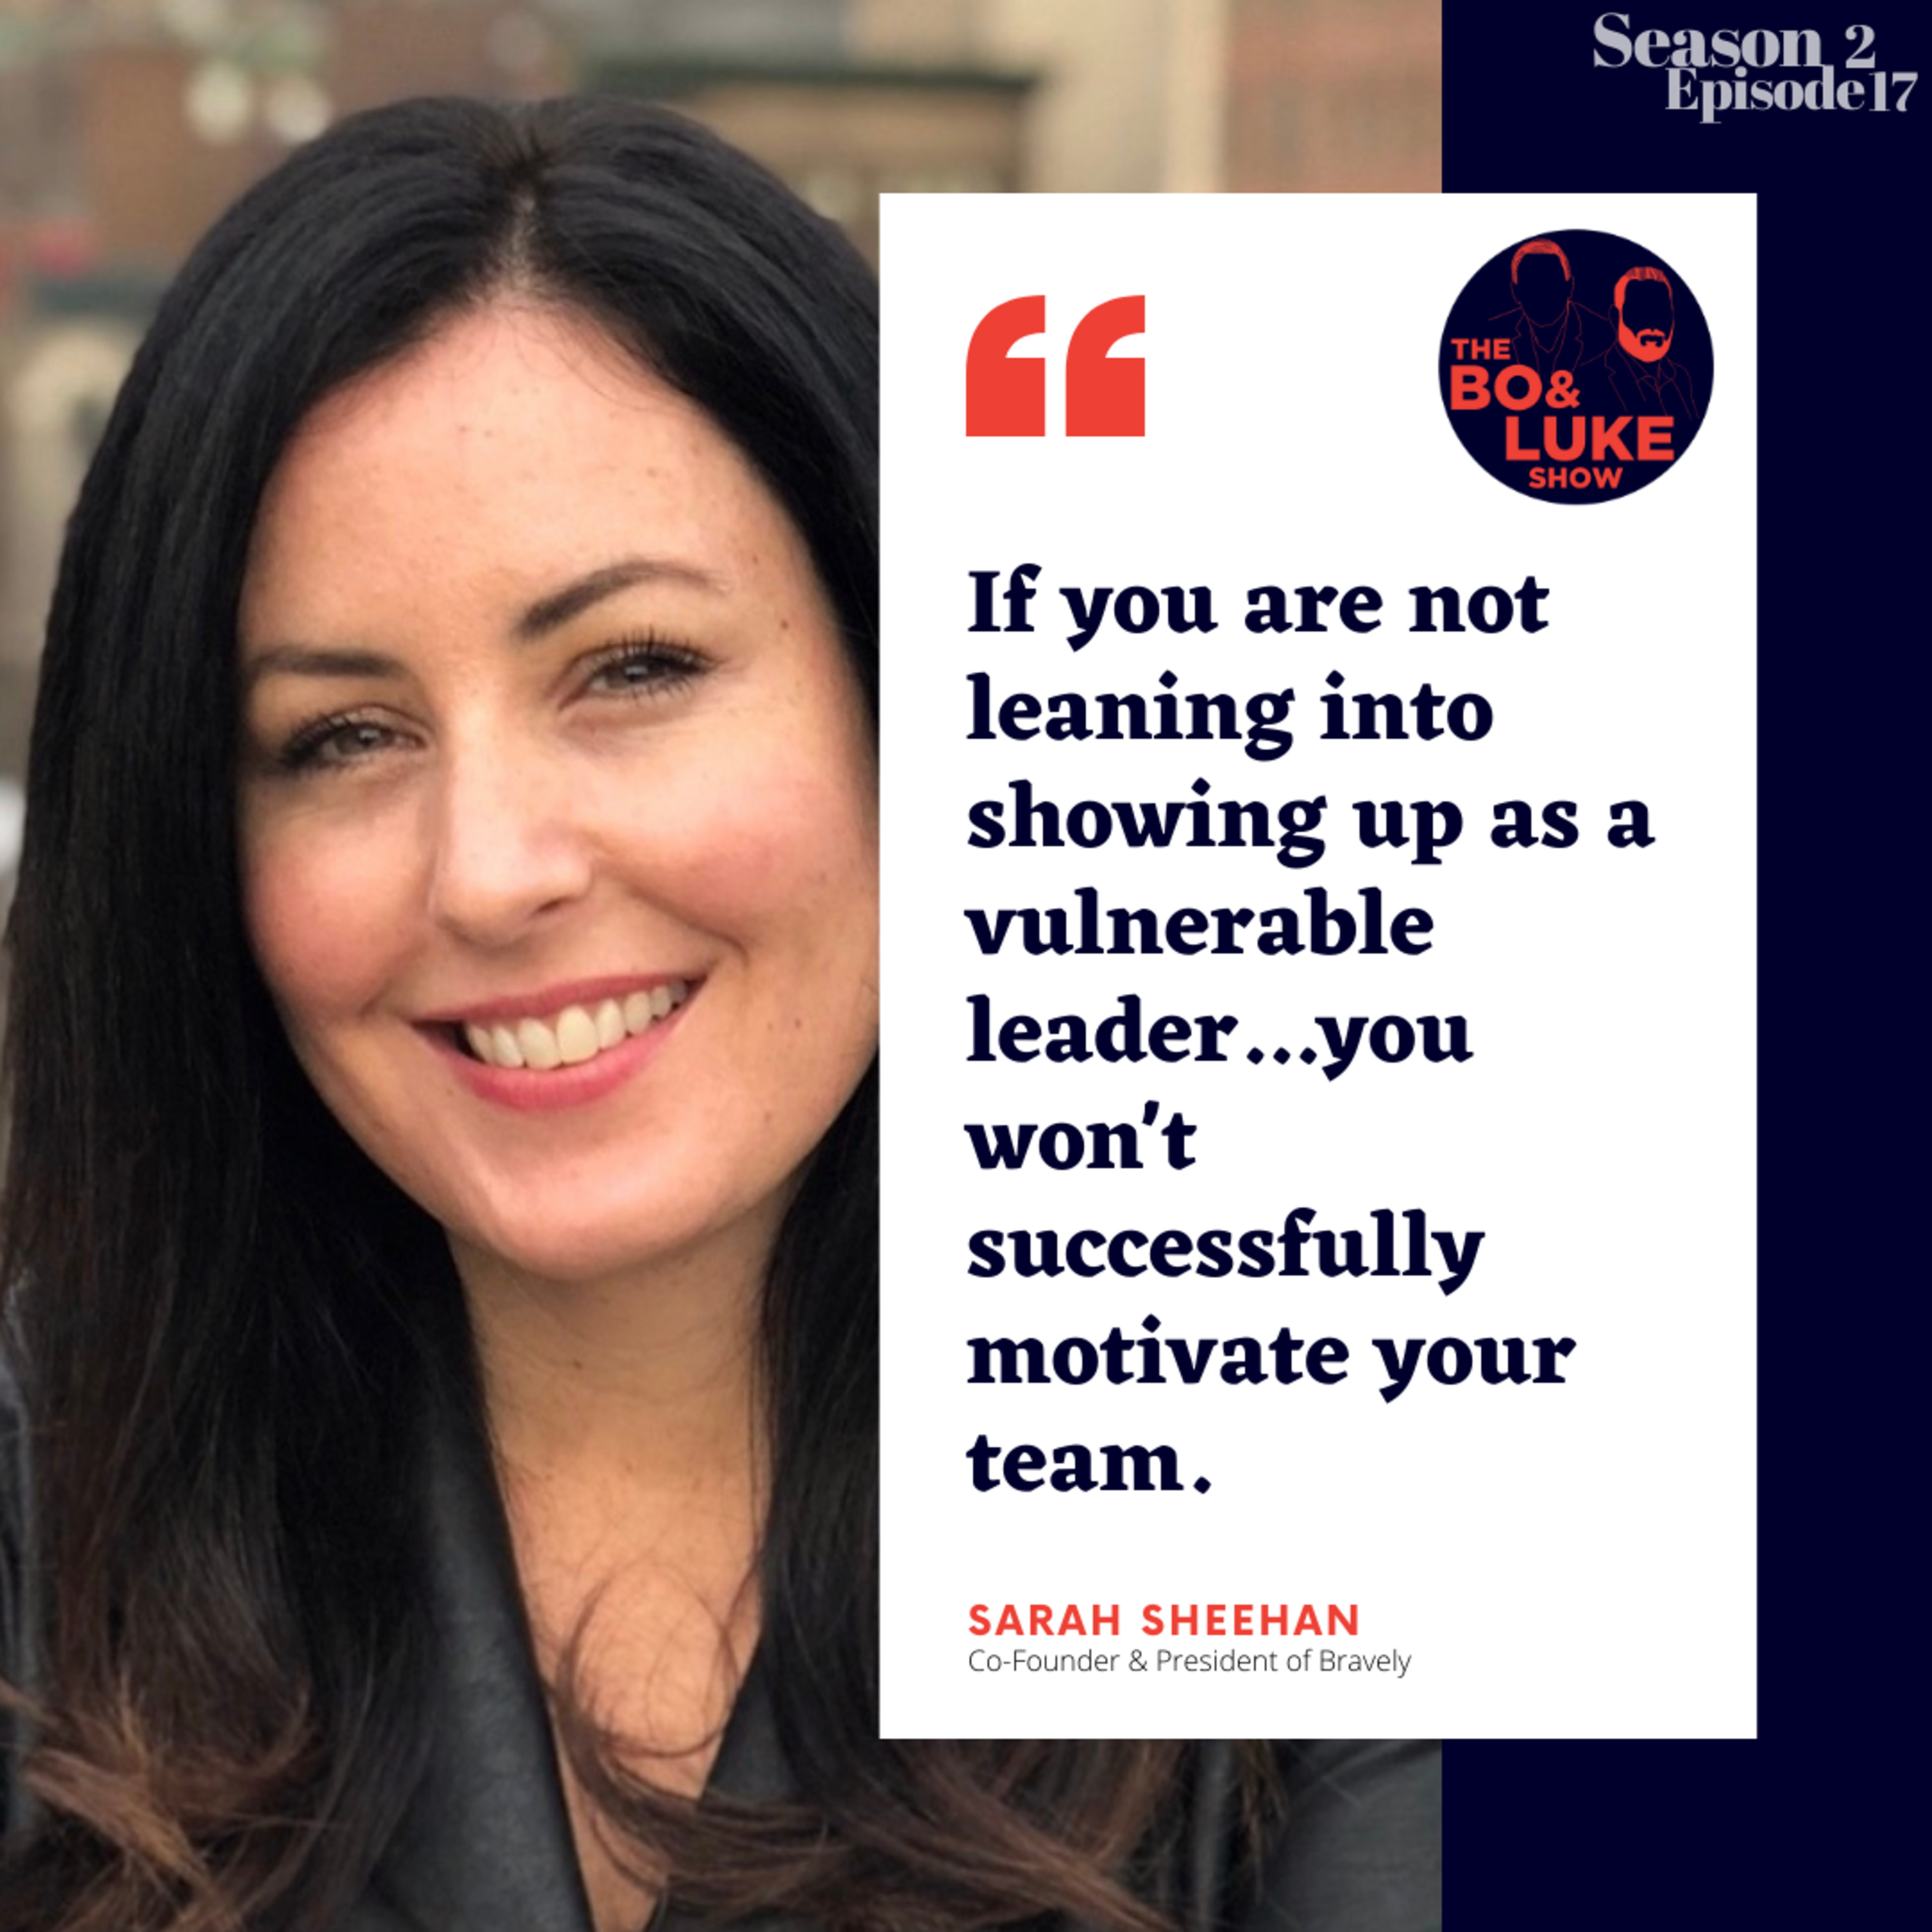 #47 - S2E17 - Make Life at Work Better for Everyone with Sarah Sheehan